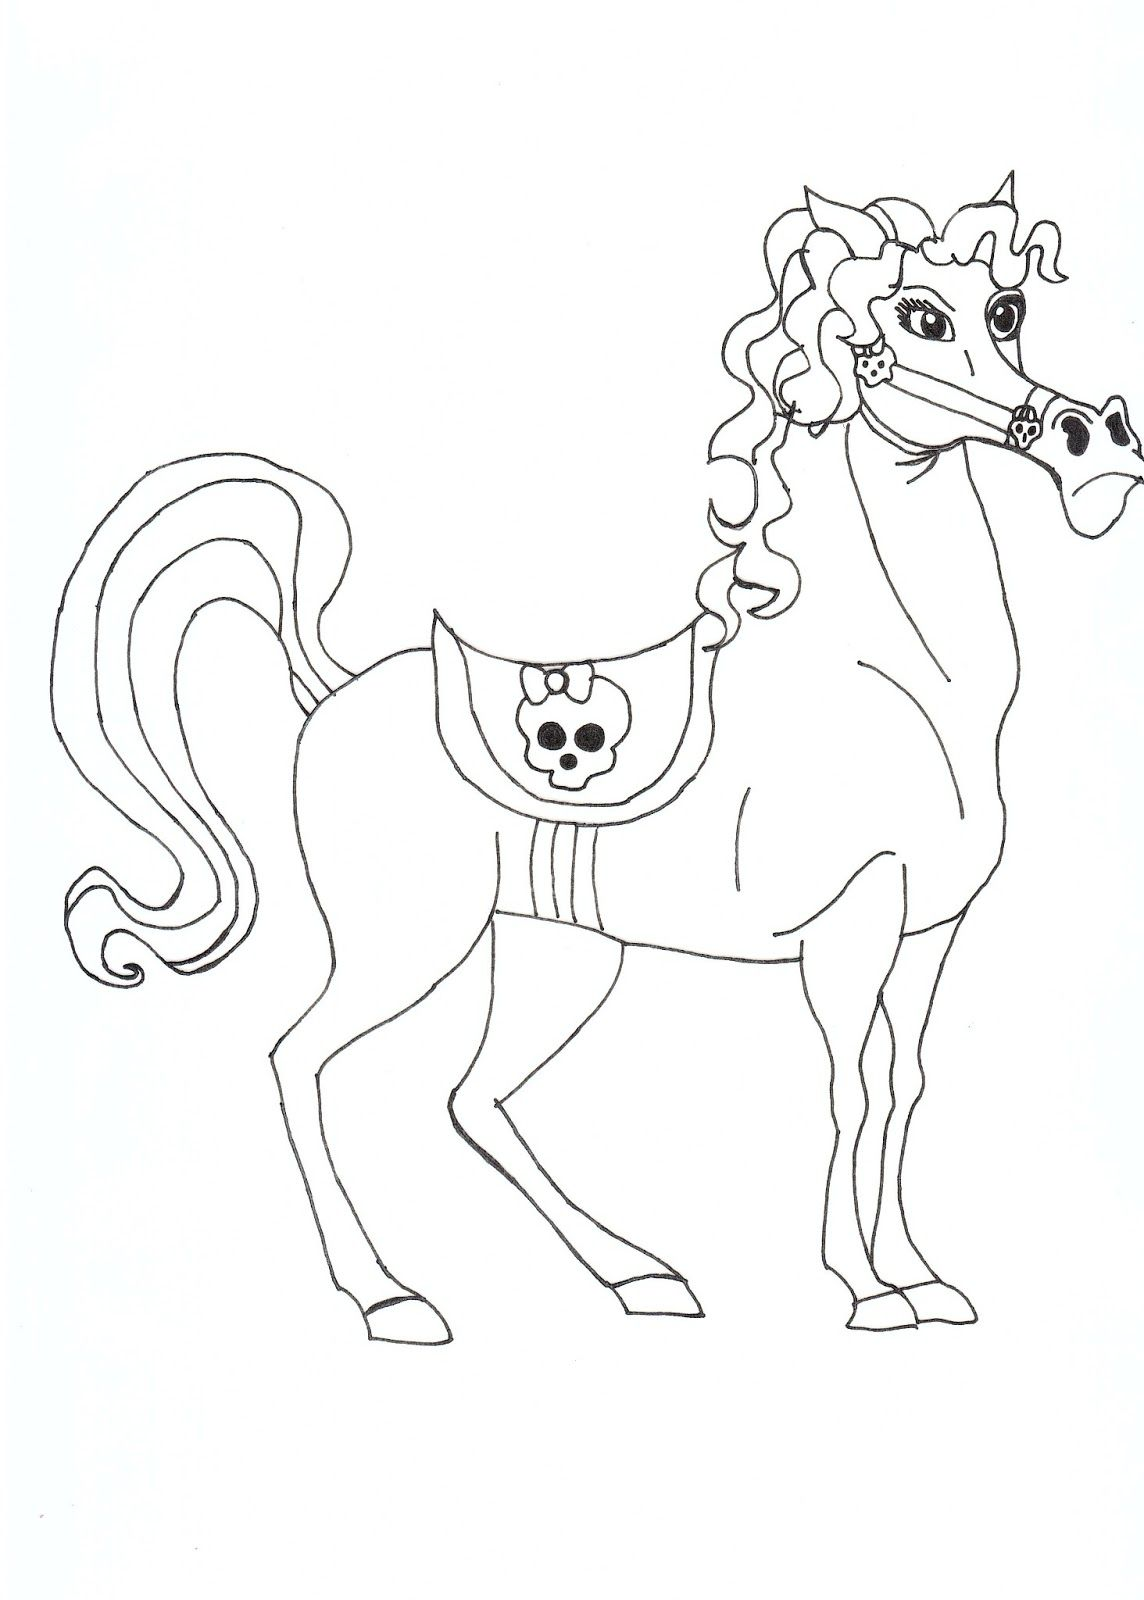 Nightmare, Headless Headmisstress Bloodgood\'s Pet Horse Coloring ...